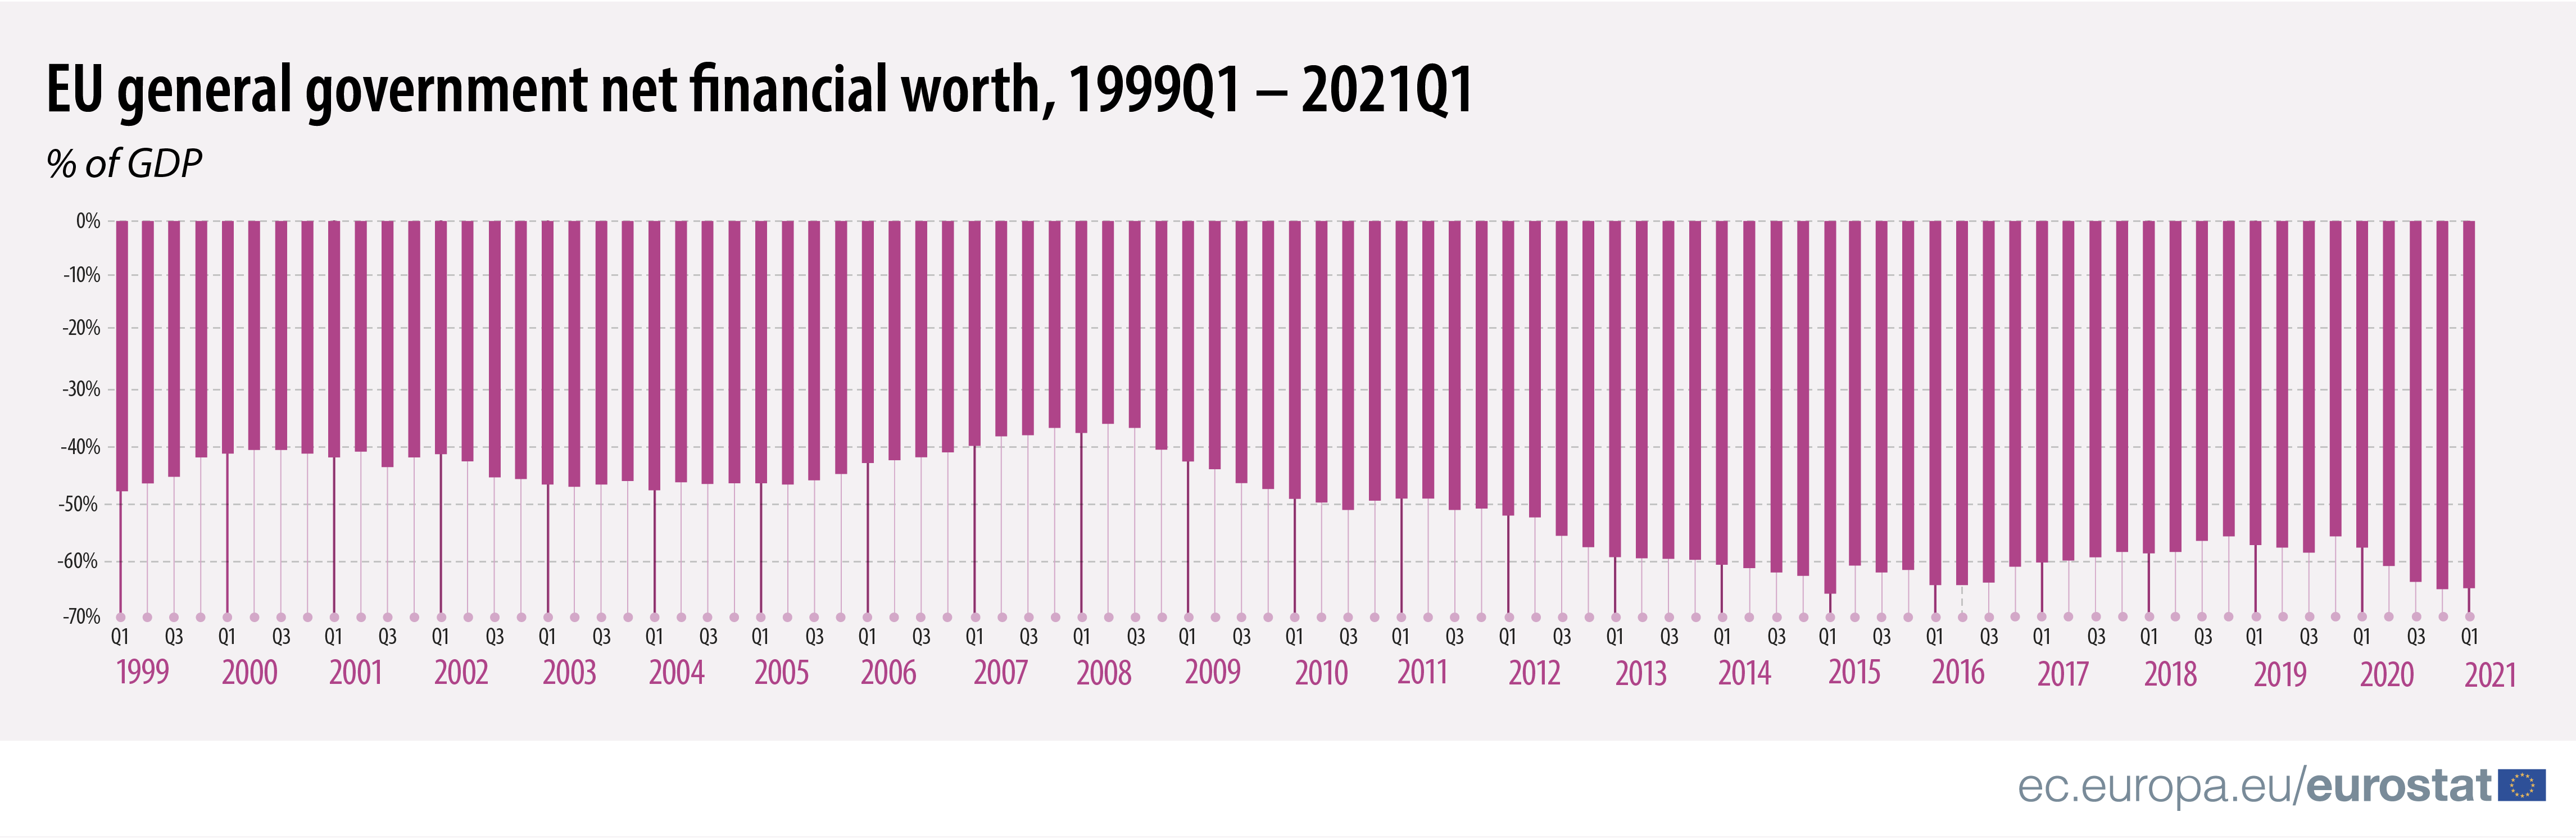 Bar chart: EU general government net financial worth, expressed as % of GDP, Q1 1999 to Q1 2021